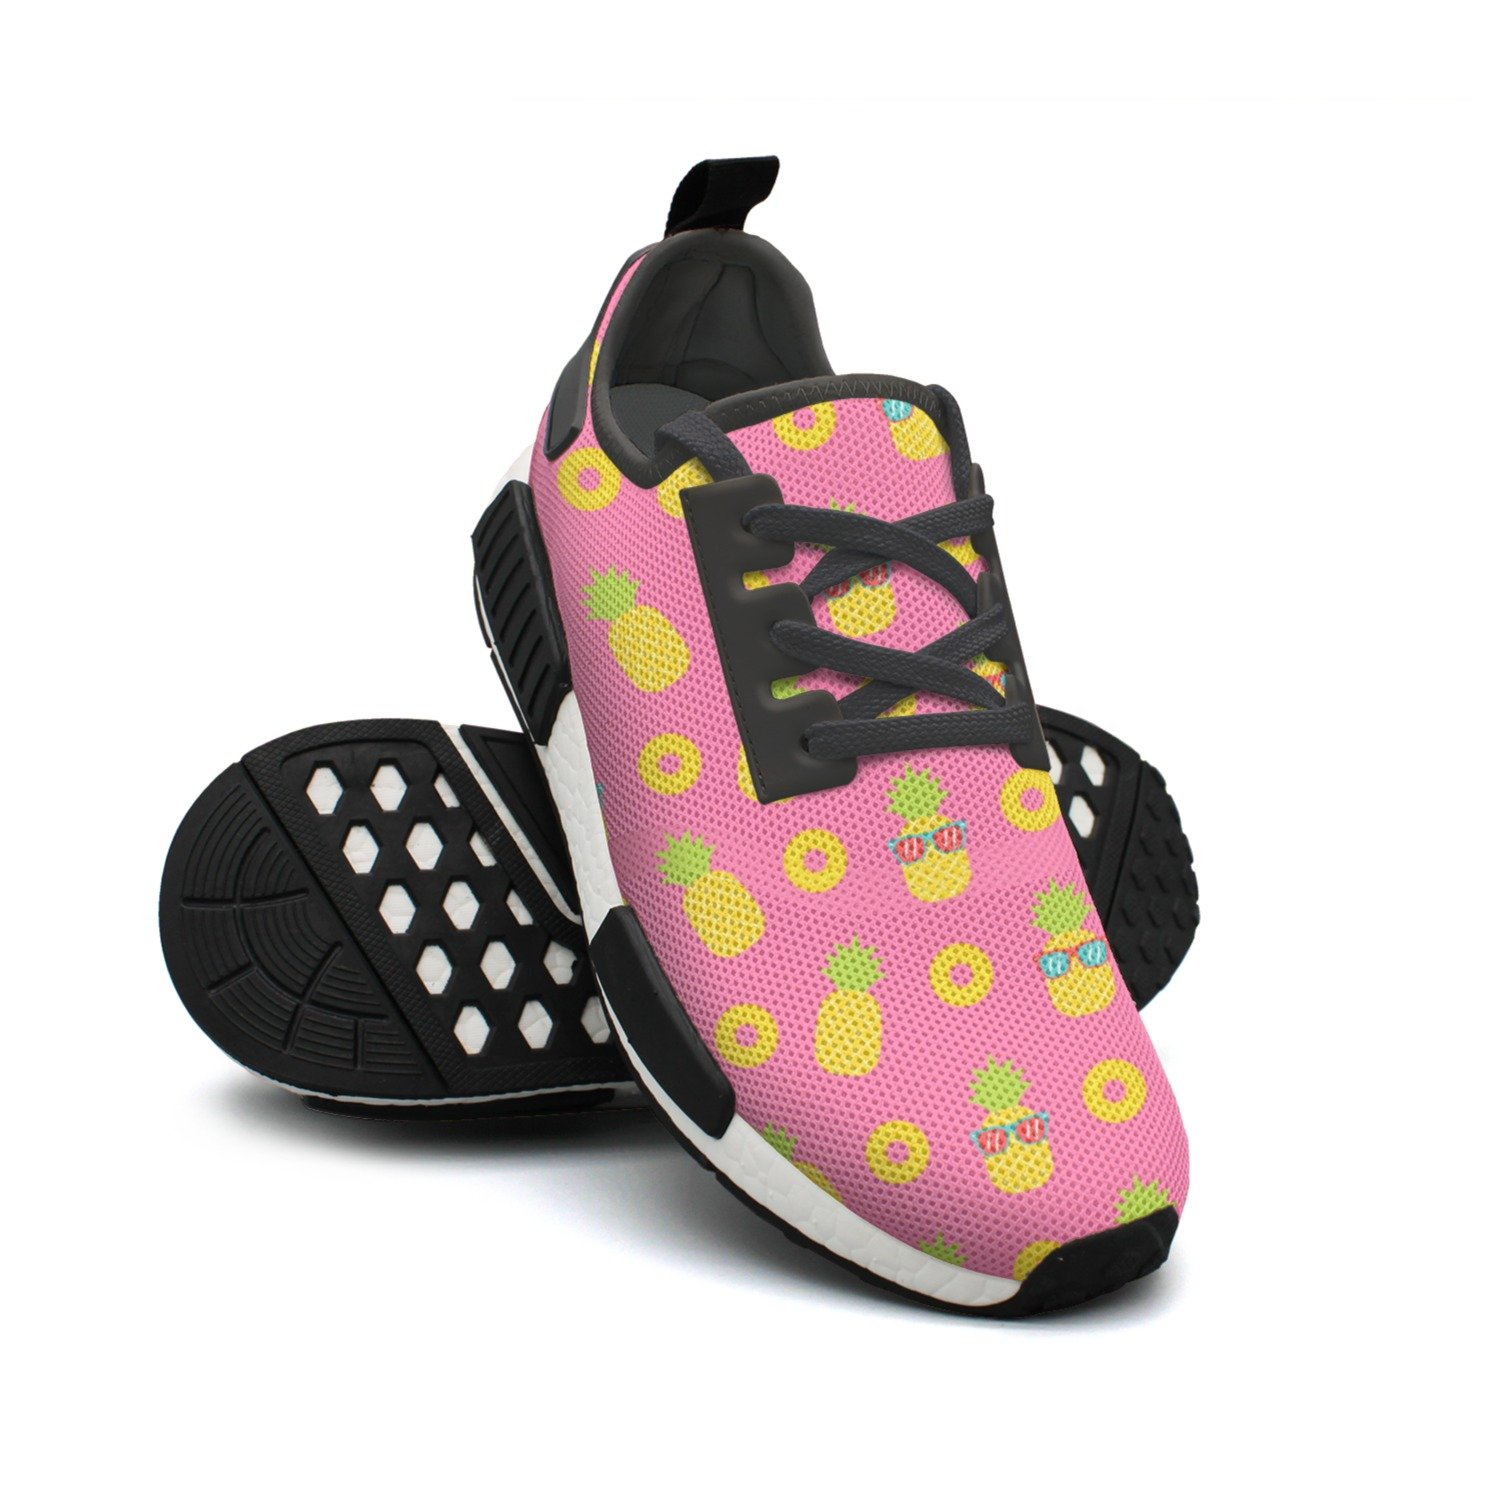 Cute Cool Cartoon Pineapple With Sunglasses Breathable Running Shoes Womens Nmd Gym Training Shoes